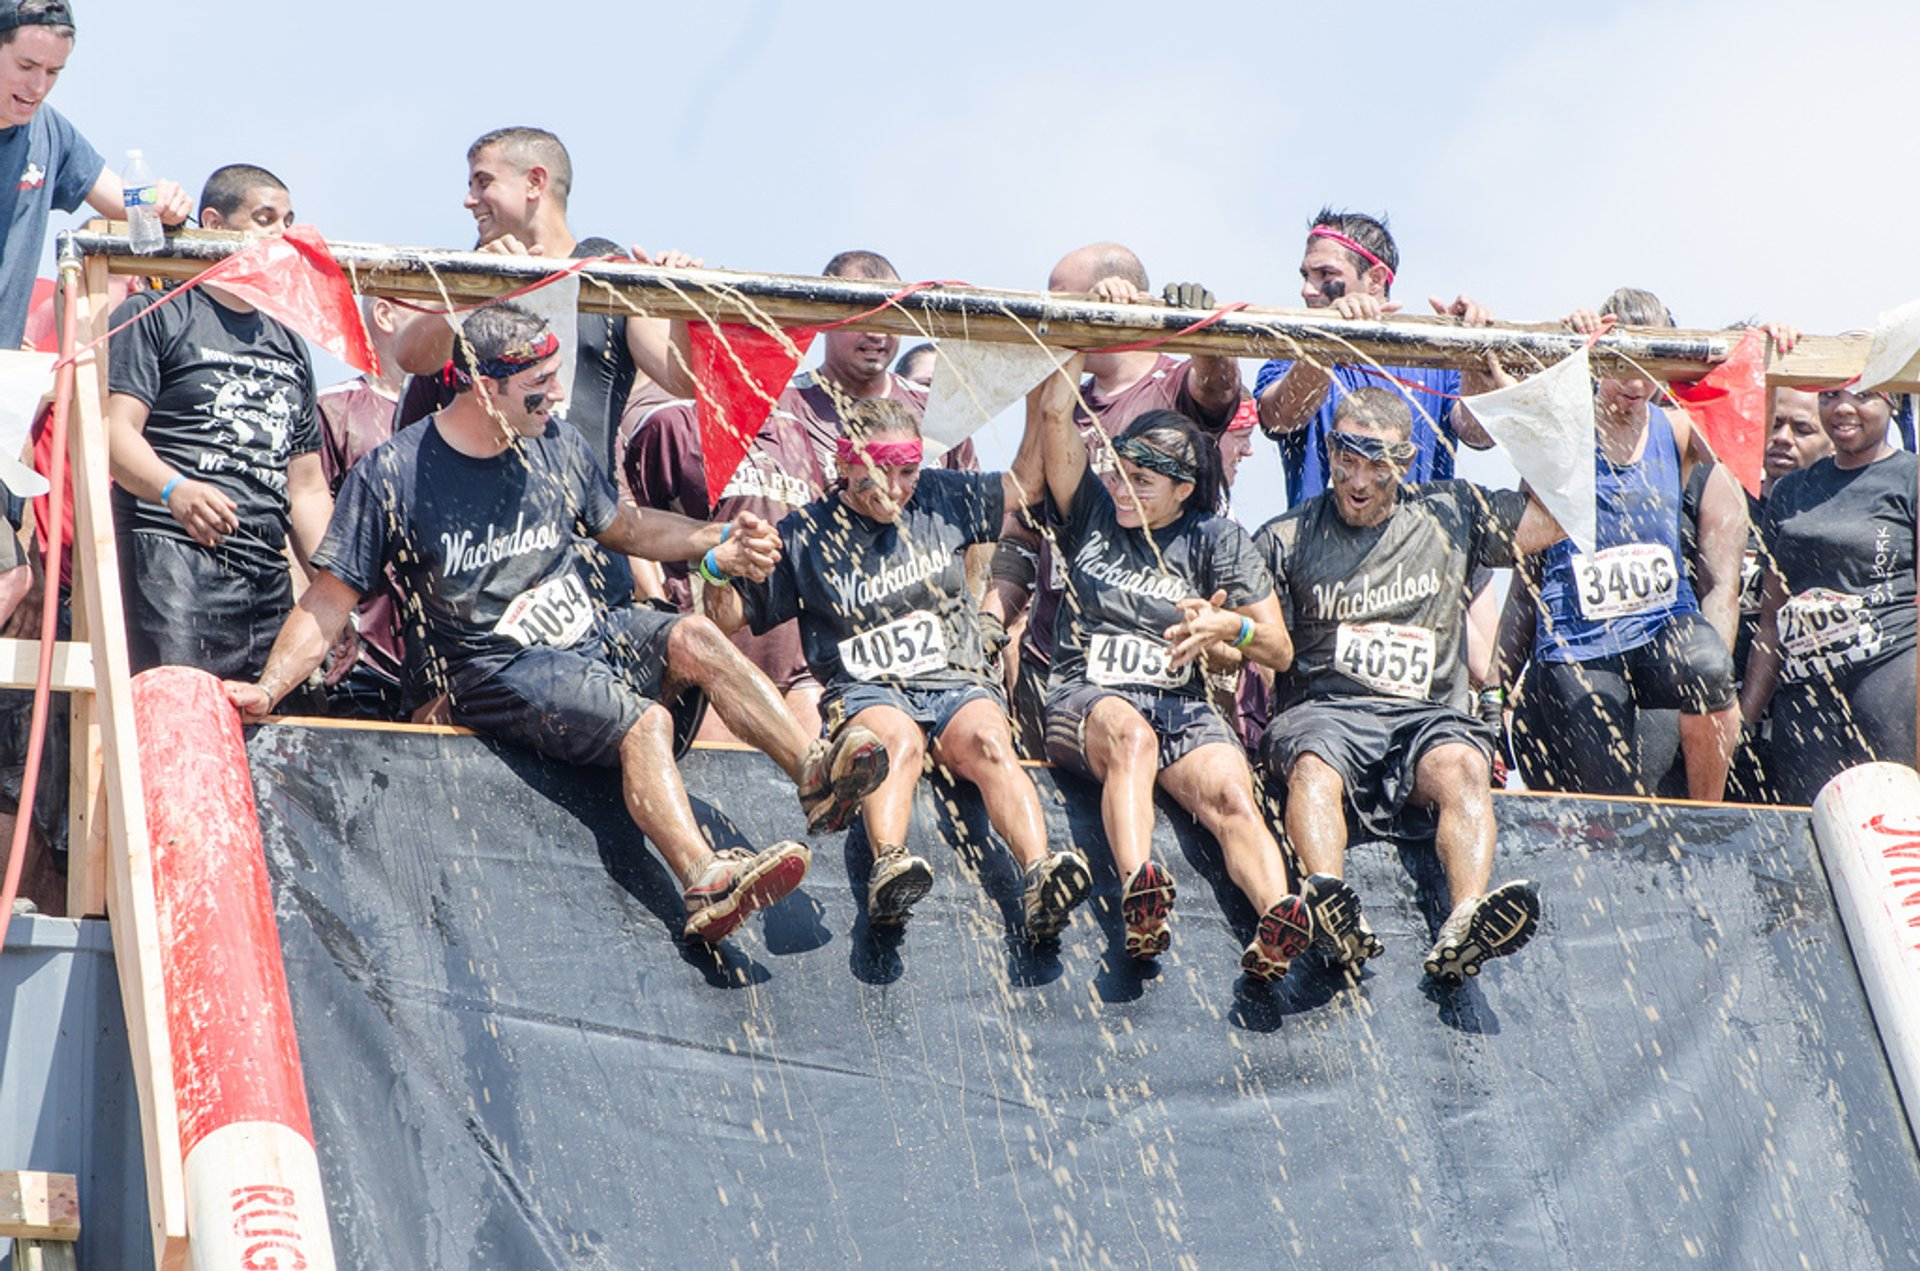 Rugged Maniac New York City in New York 2020 - Best Time